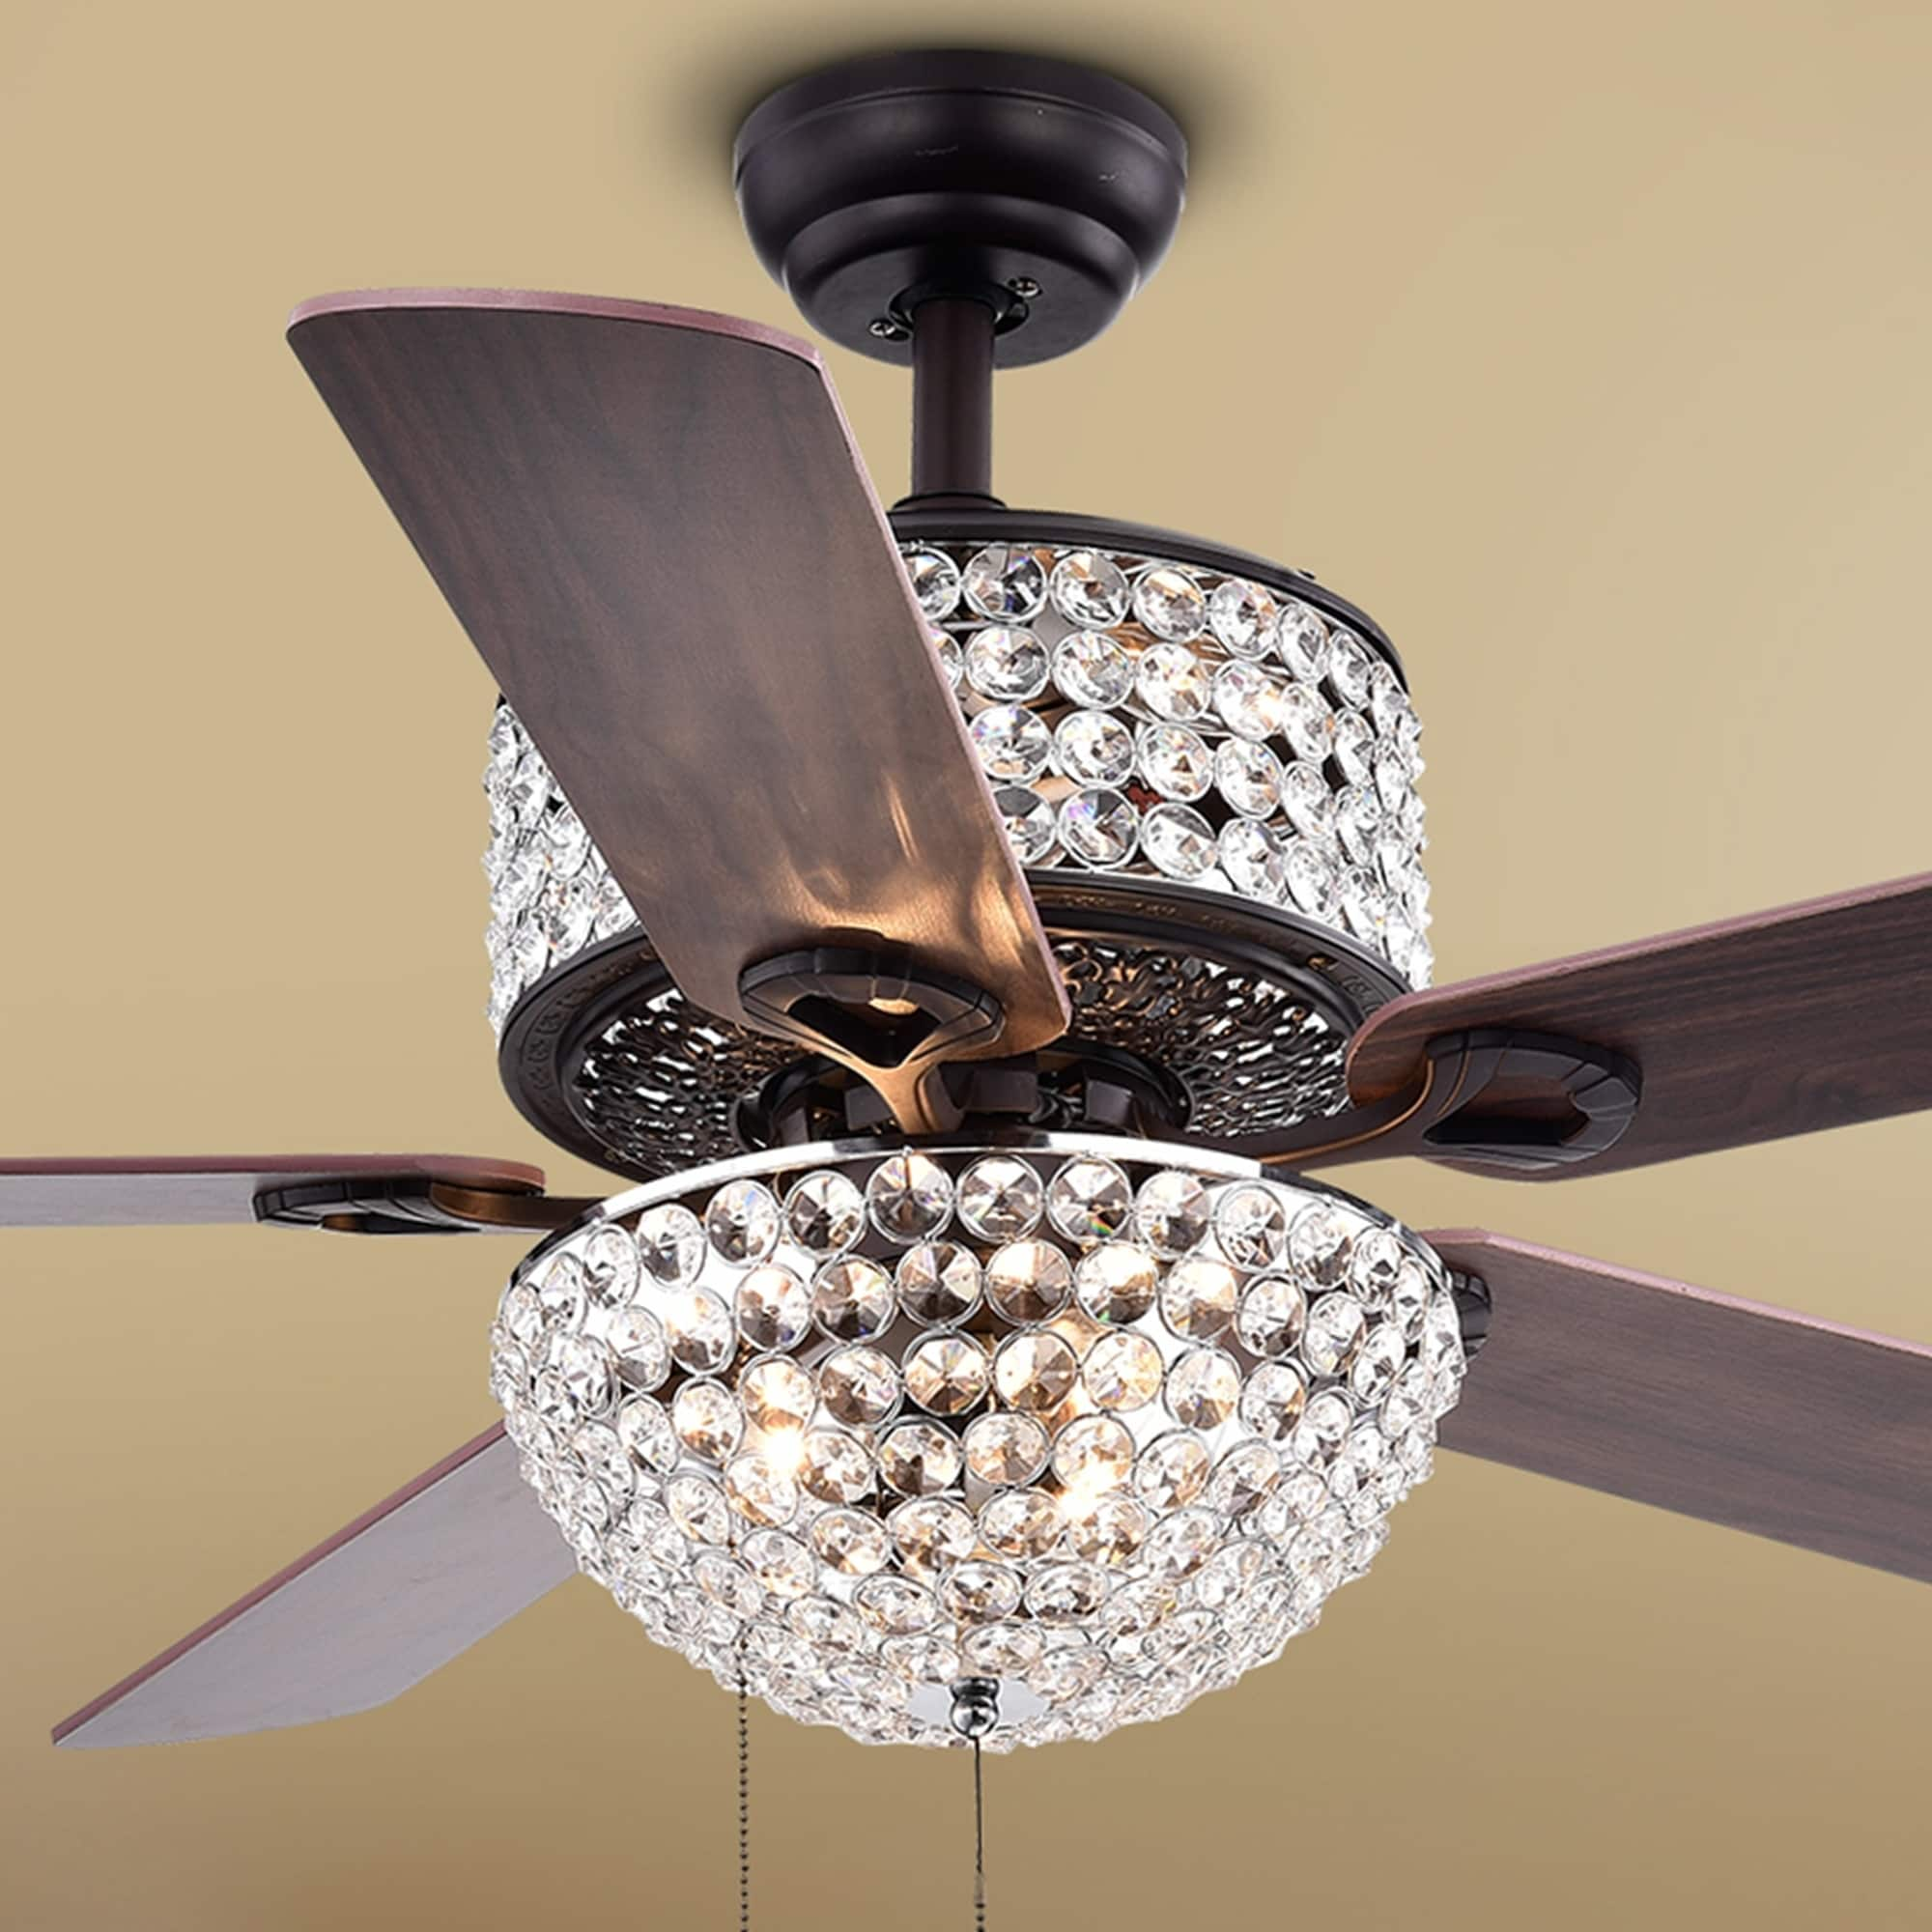 Six-Light Crystal Five-Blade 52-Inch Ceiling Fan